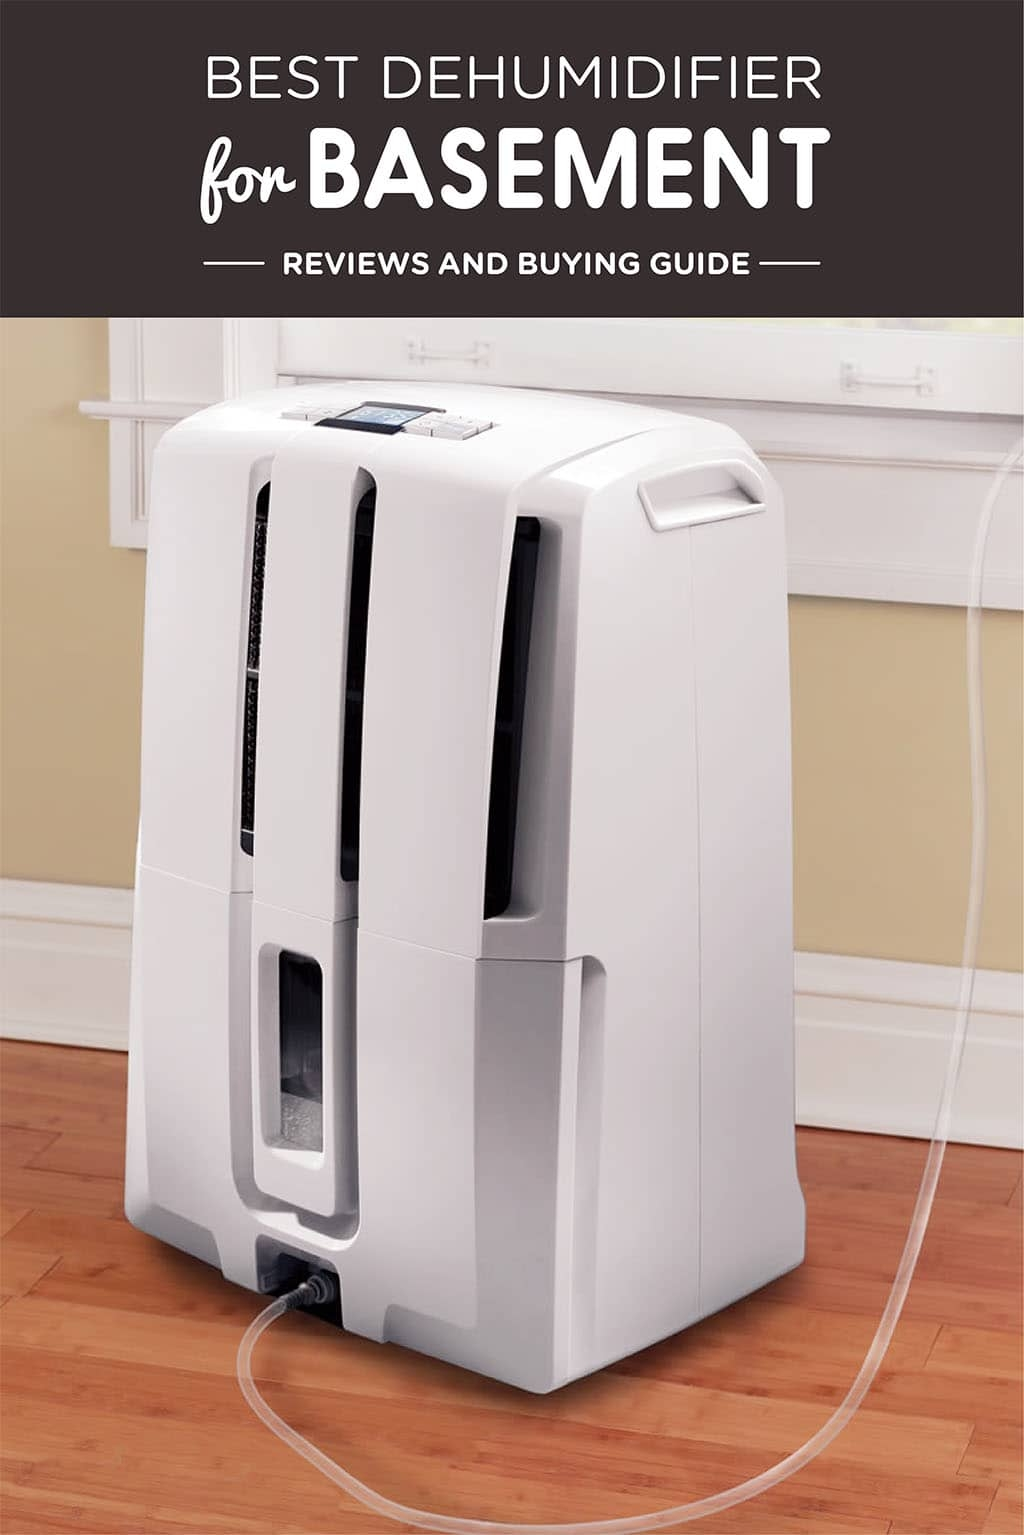 Top Rated Dehumidifier For Basement